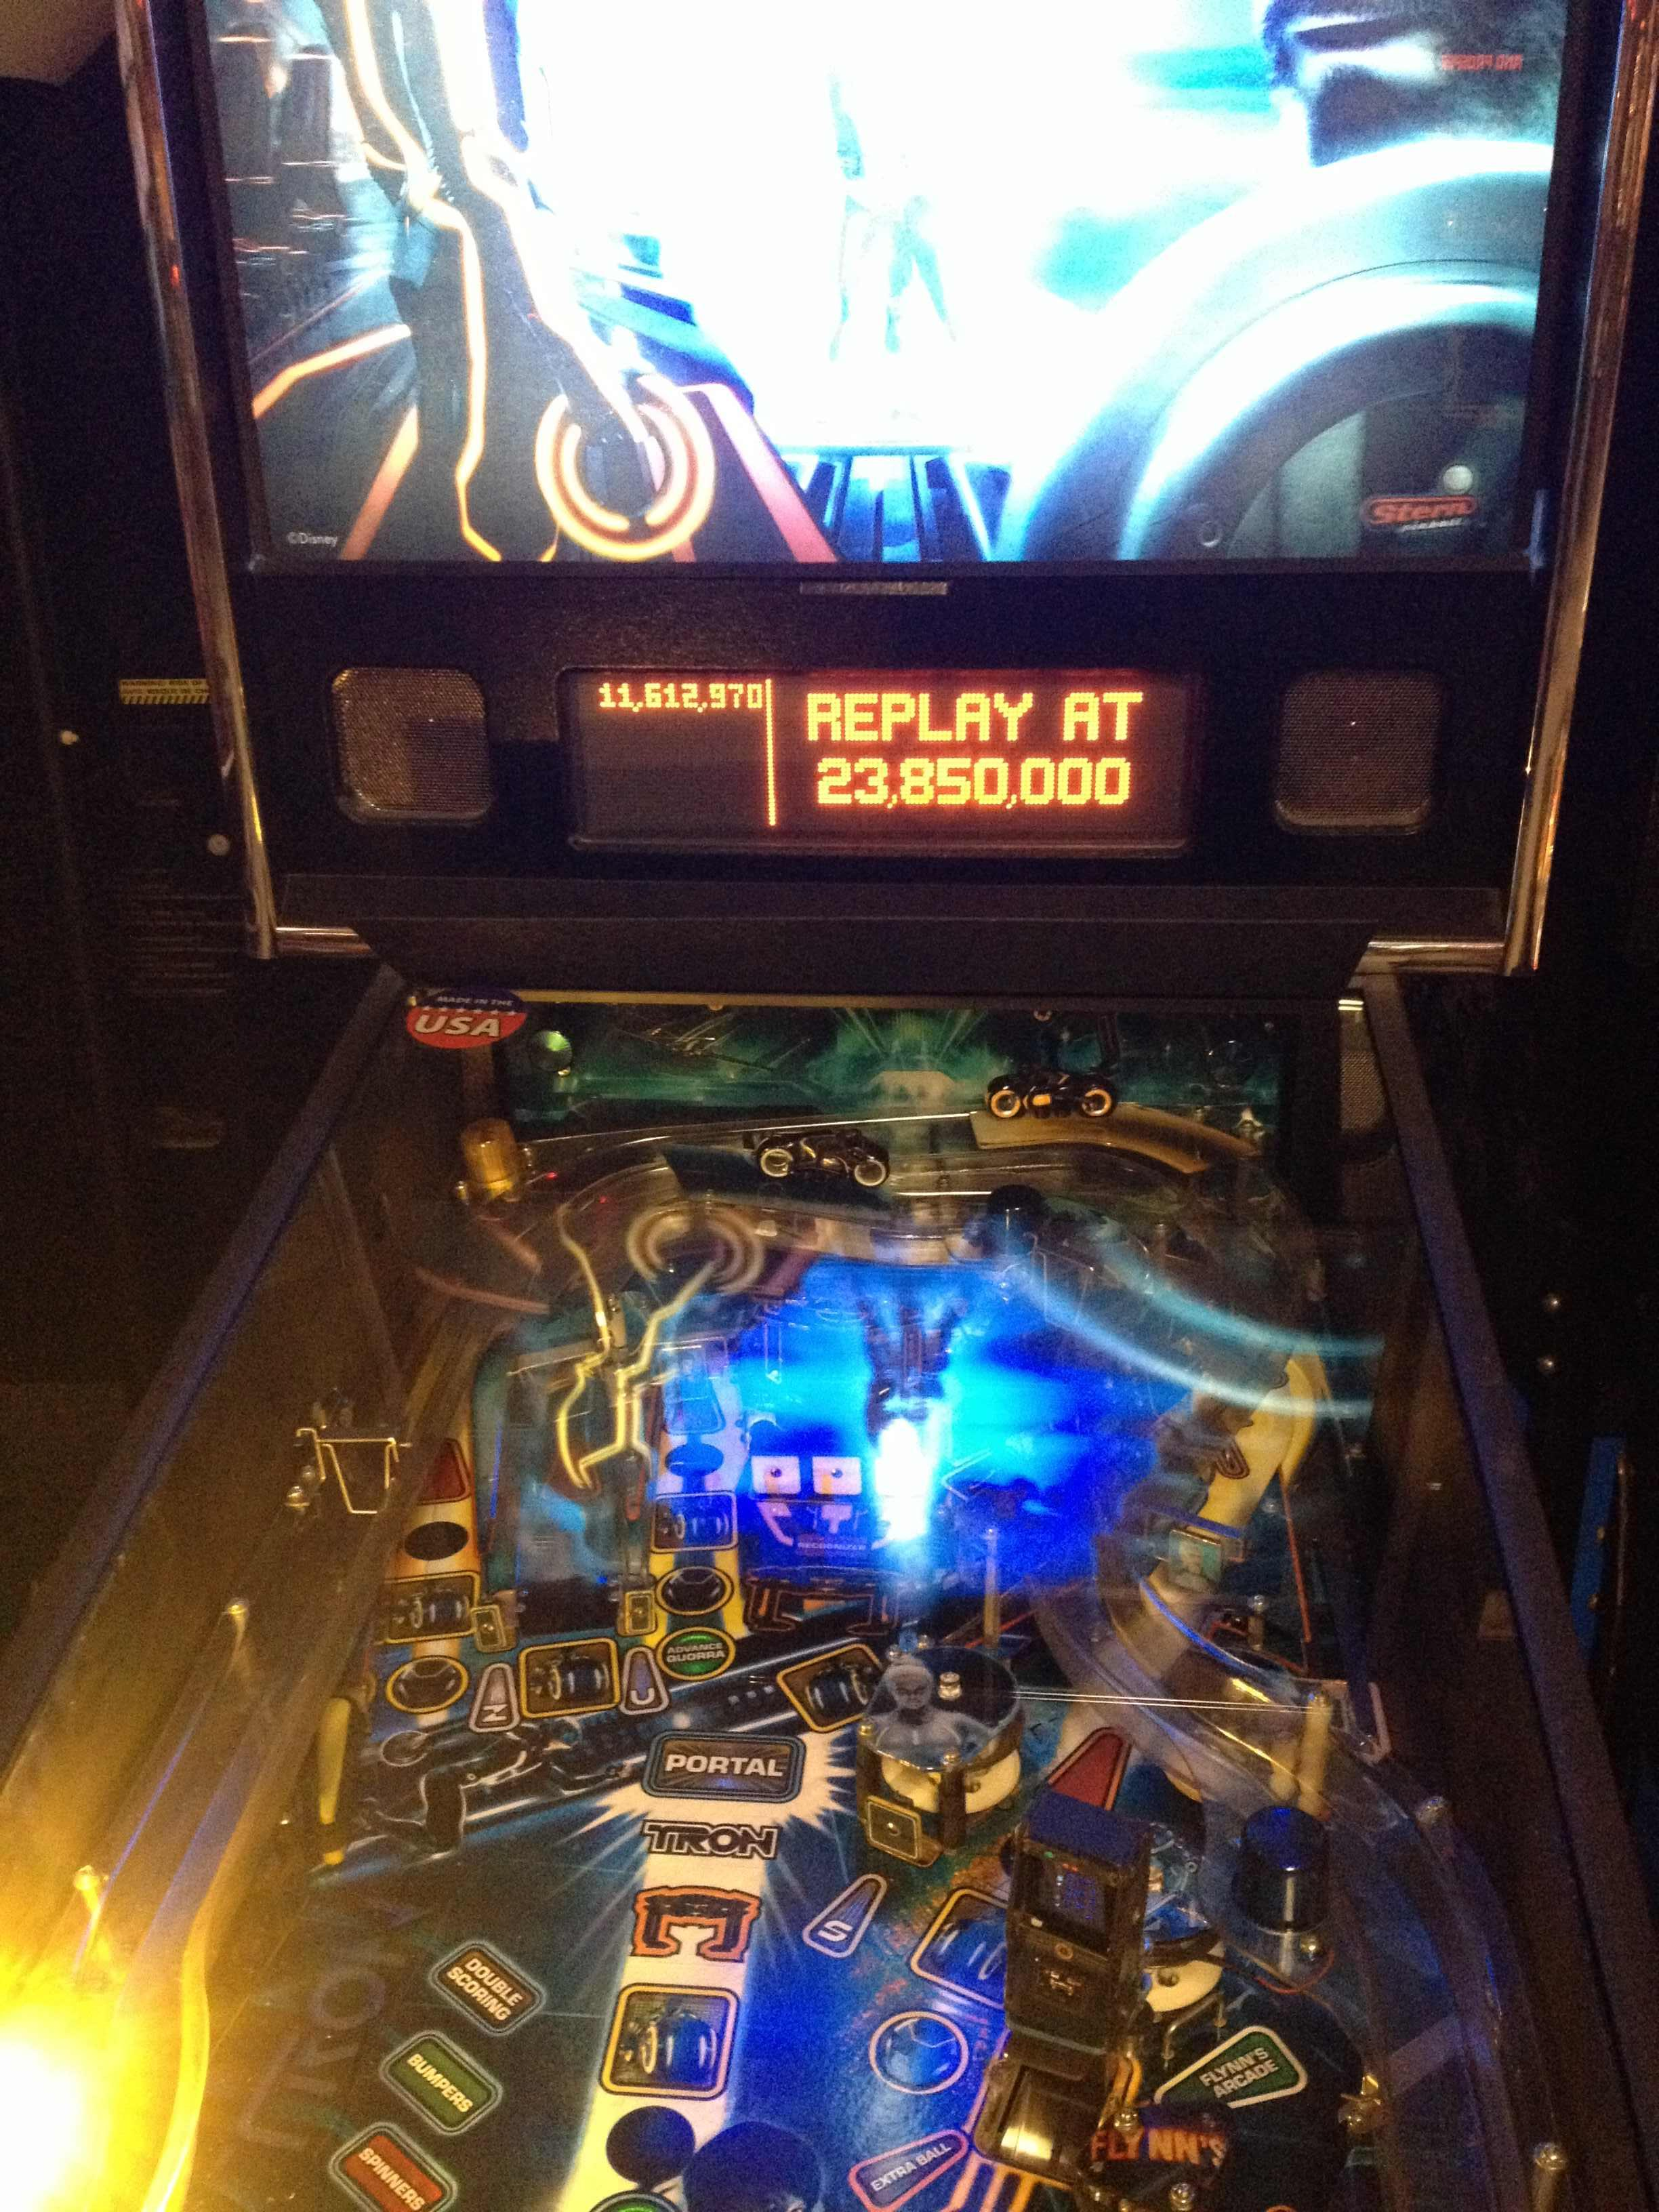 Tron 11,612,970 points